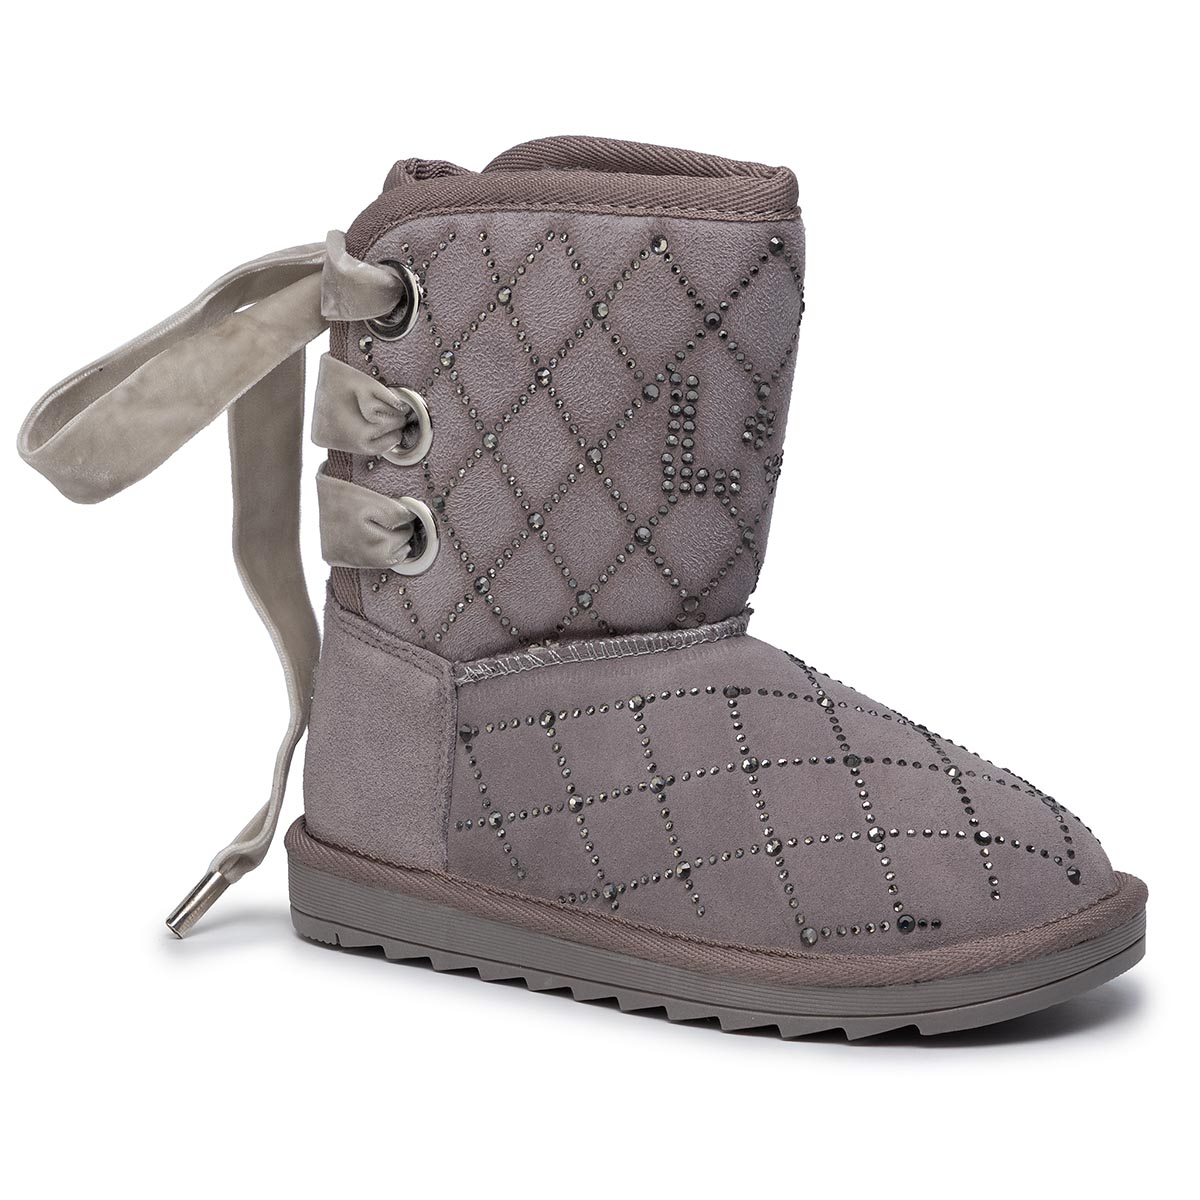 Pantofi Liu Jo - Margot 13 469739 Px052 M Grey 01072 imagine epantofi.ro 2021